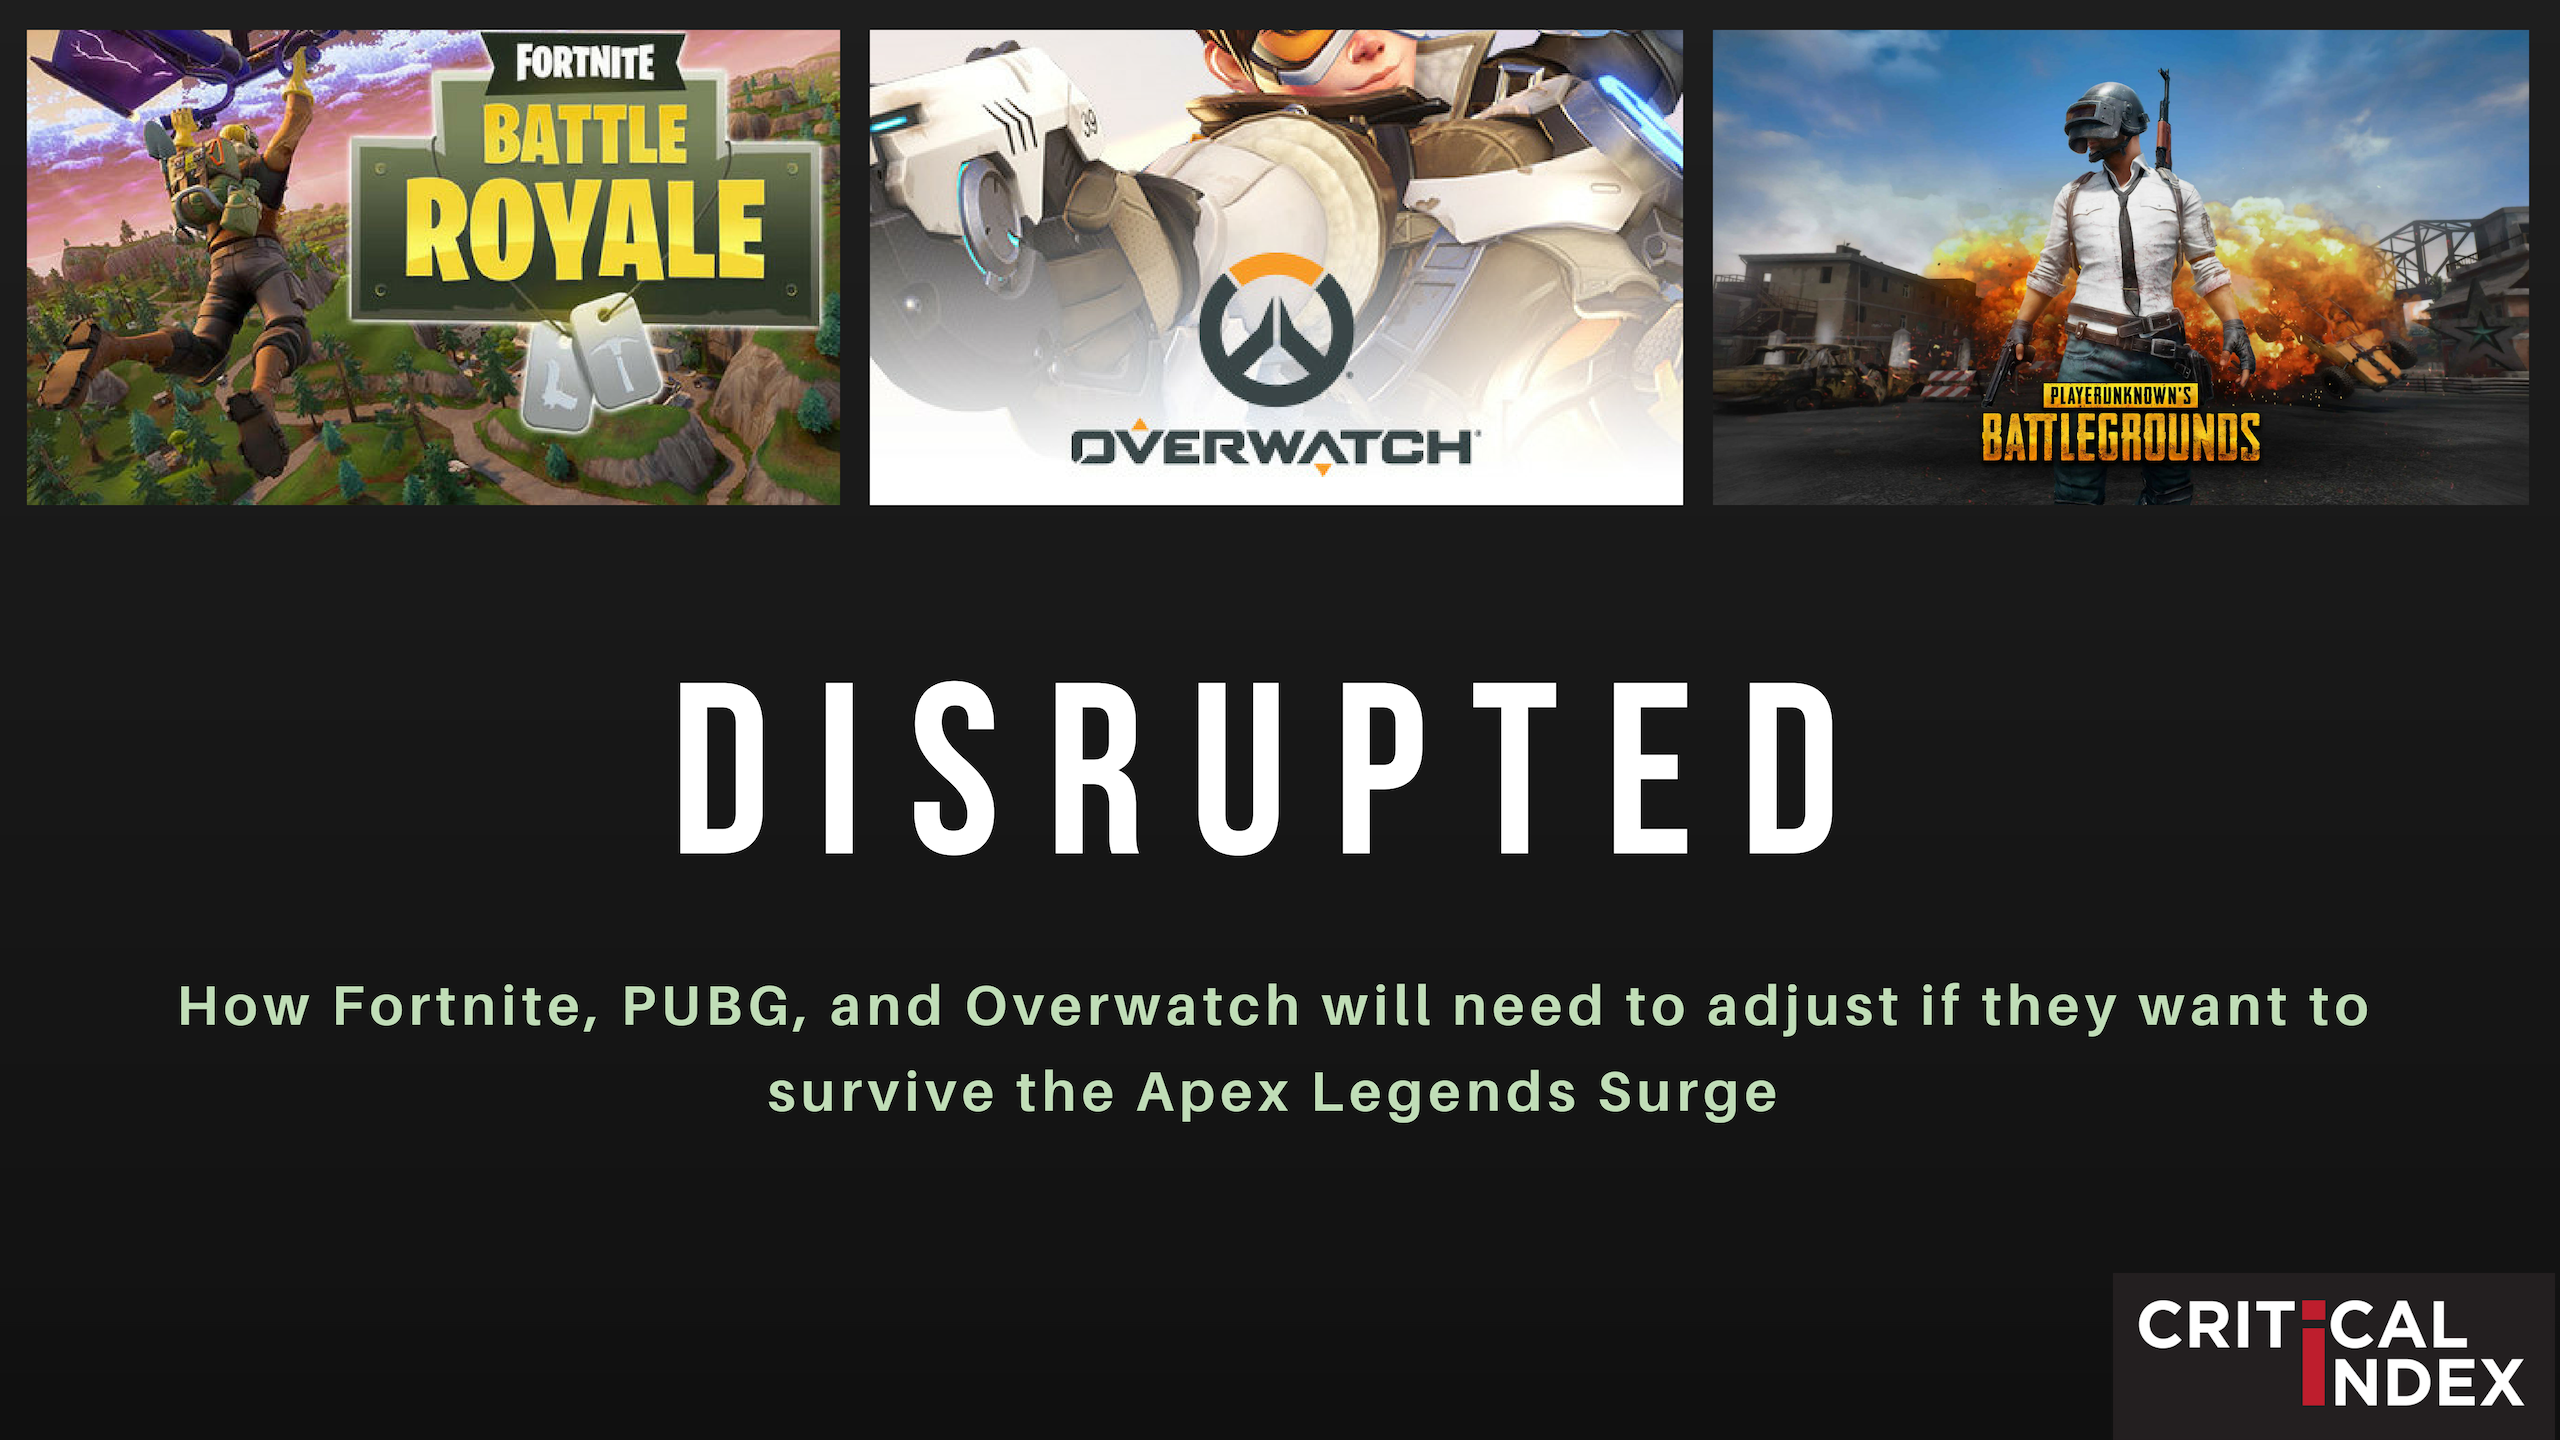 DISRUPTED: How Overwatch, Fortnite, and PUBG will need to